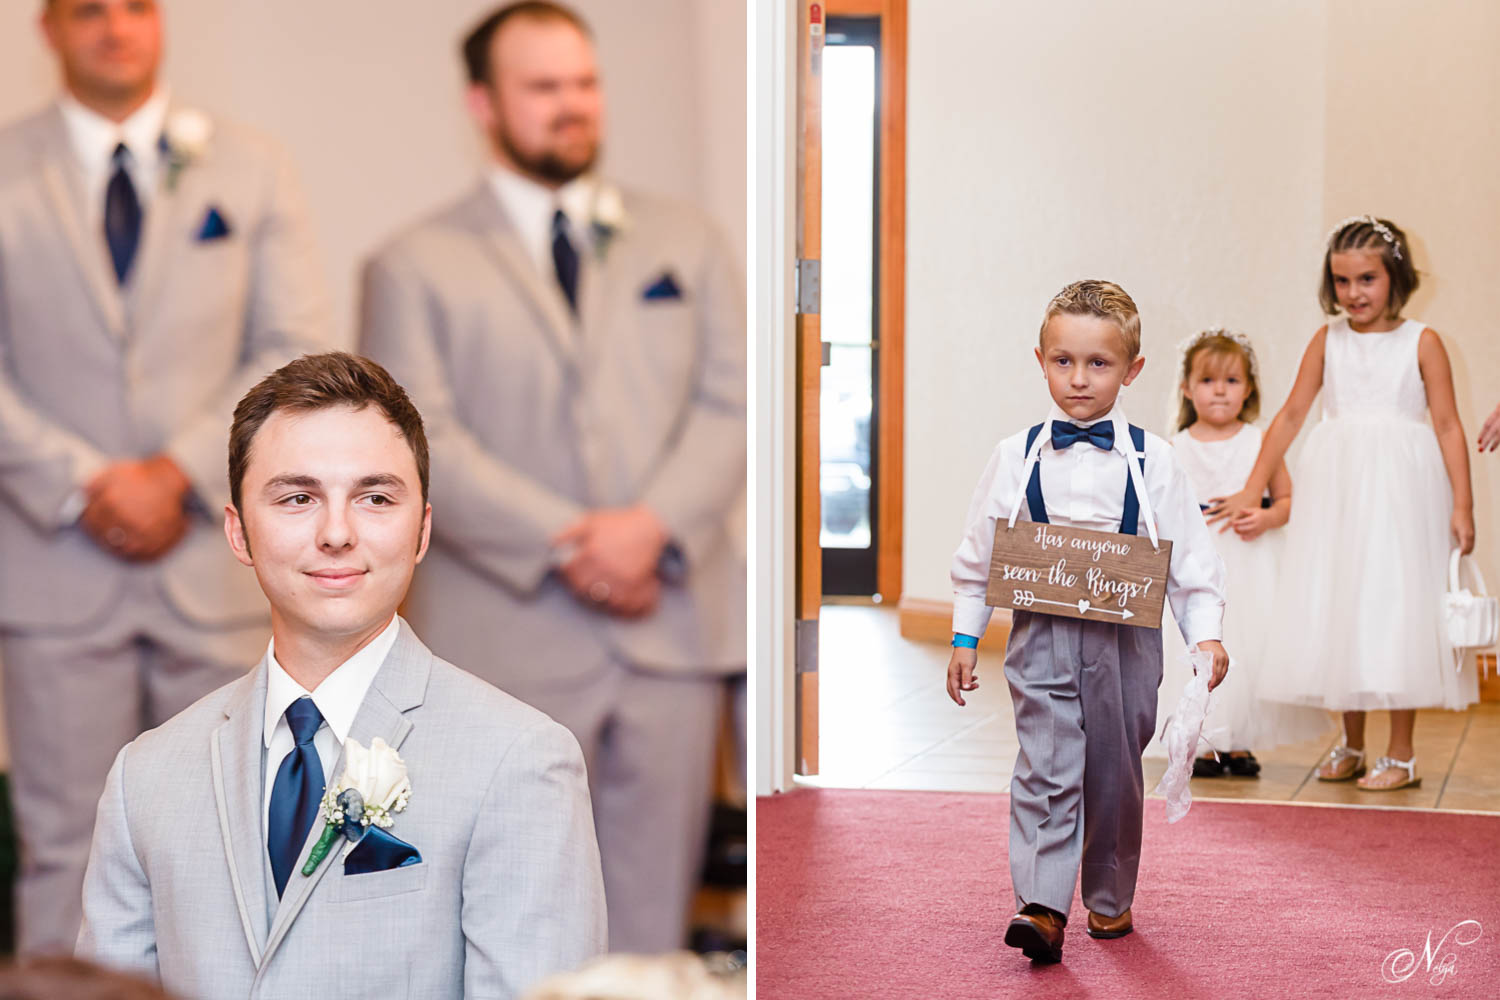 groom in gray suit watching the ring bearer walk in with cute wooden sign that says Has anyone seen the rings?